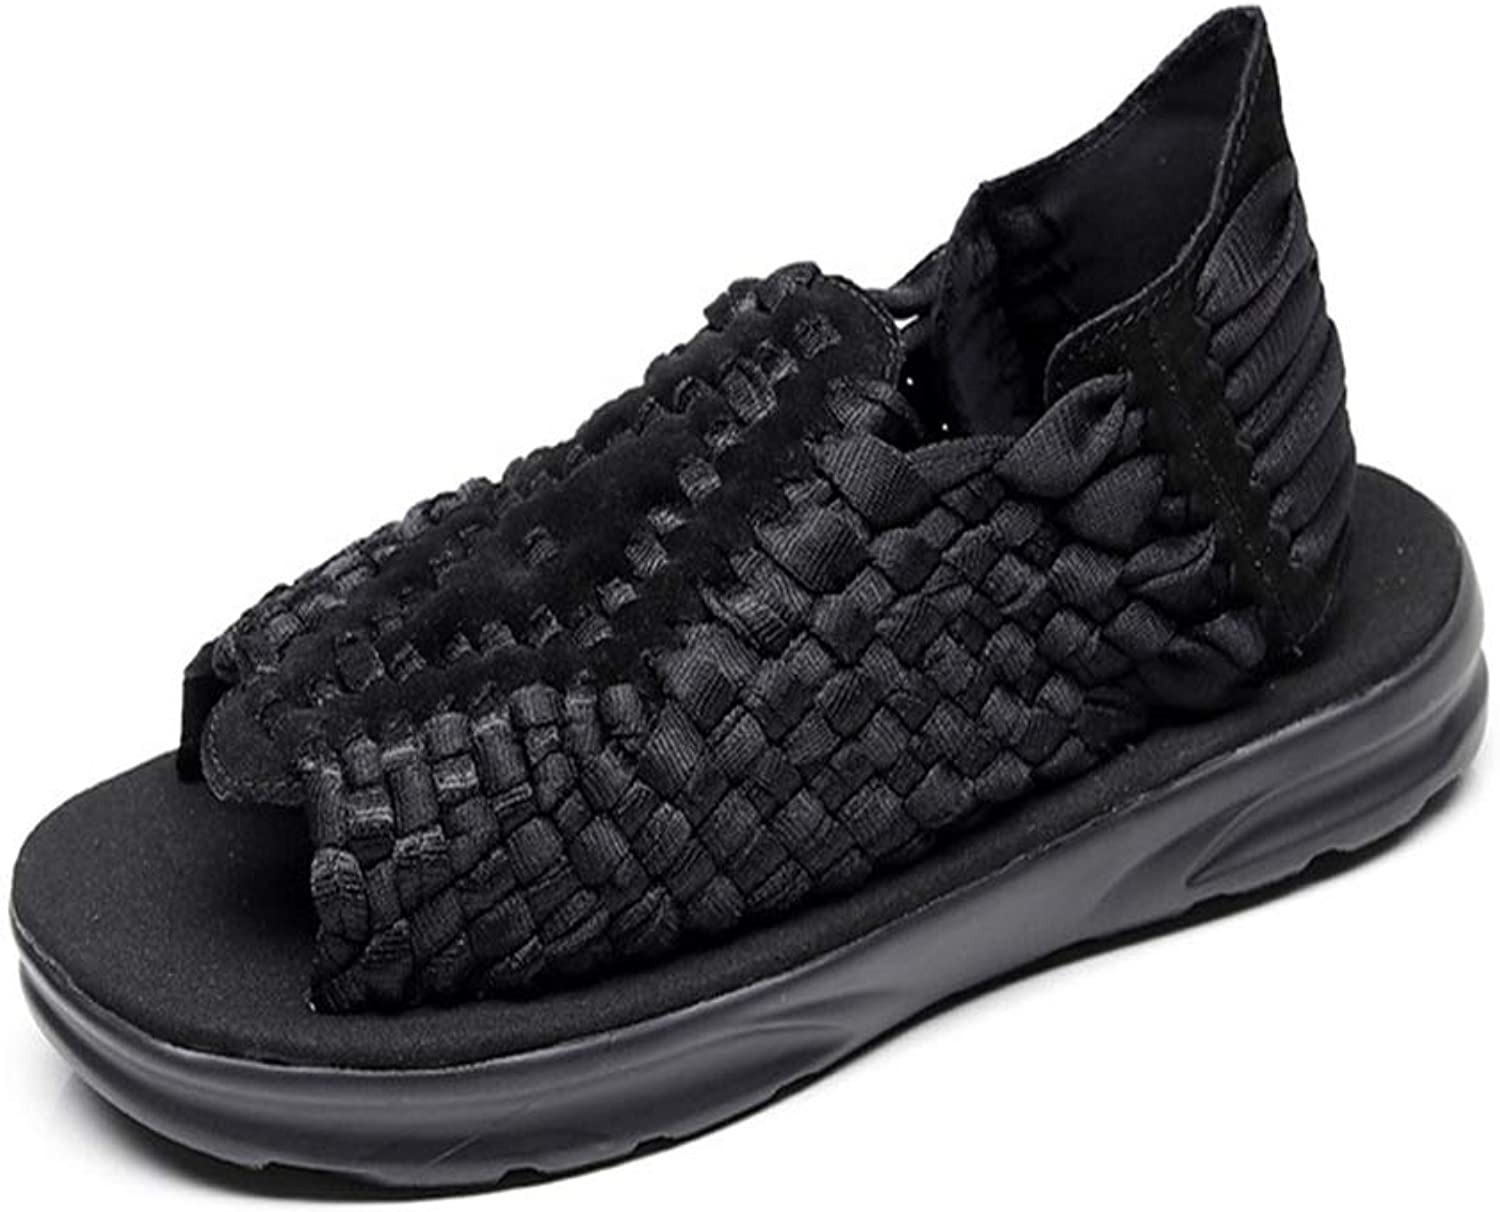 Hilotu Sandals for Men Stylish Knit Open Toe Casual shoes Soft Comfortable Sandals Indoor and Outdoor Beach Walking shoes Flat NonSlip Slippers (color   Black, Size   9 M US)